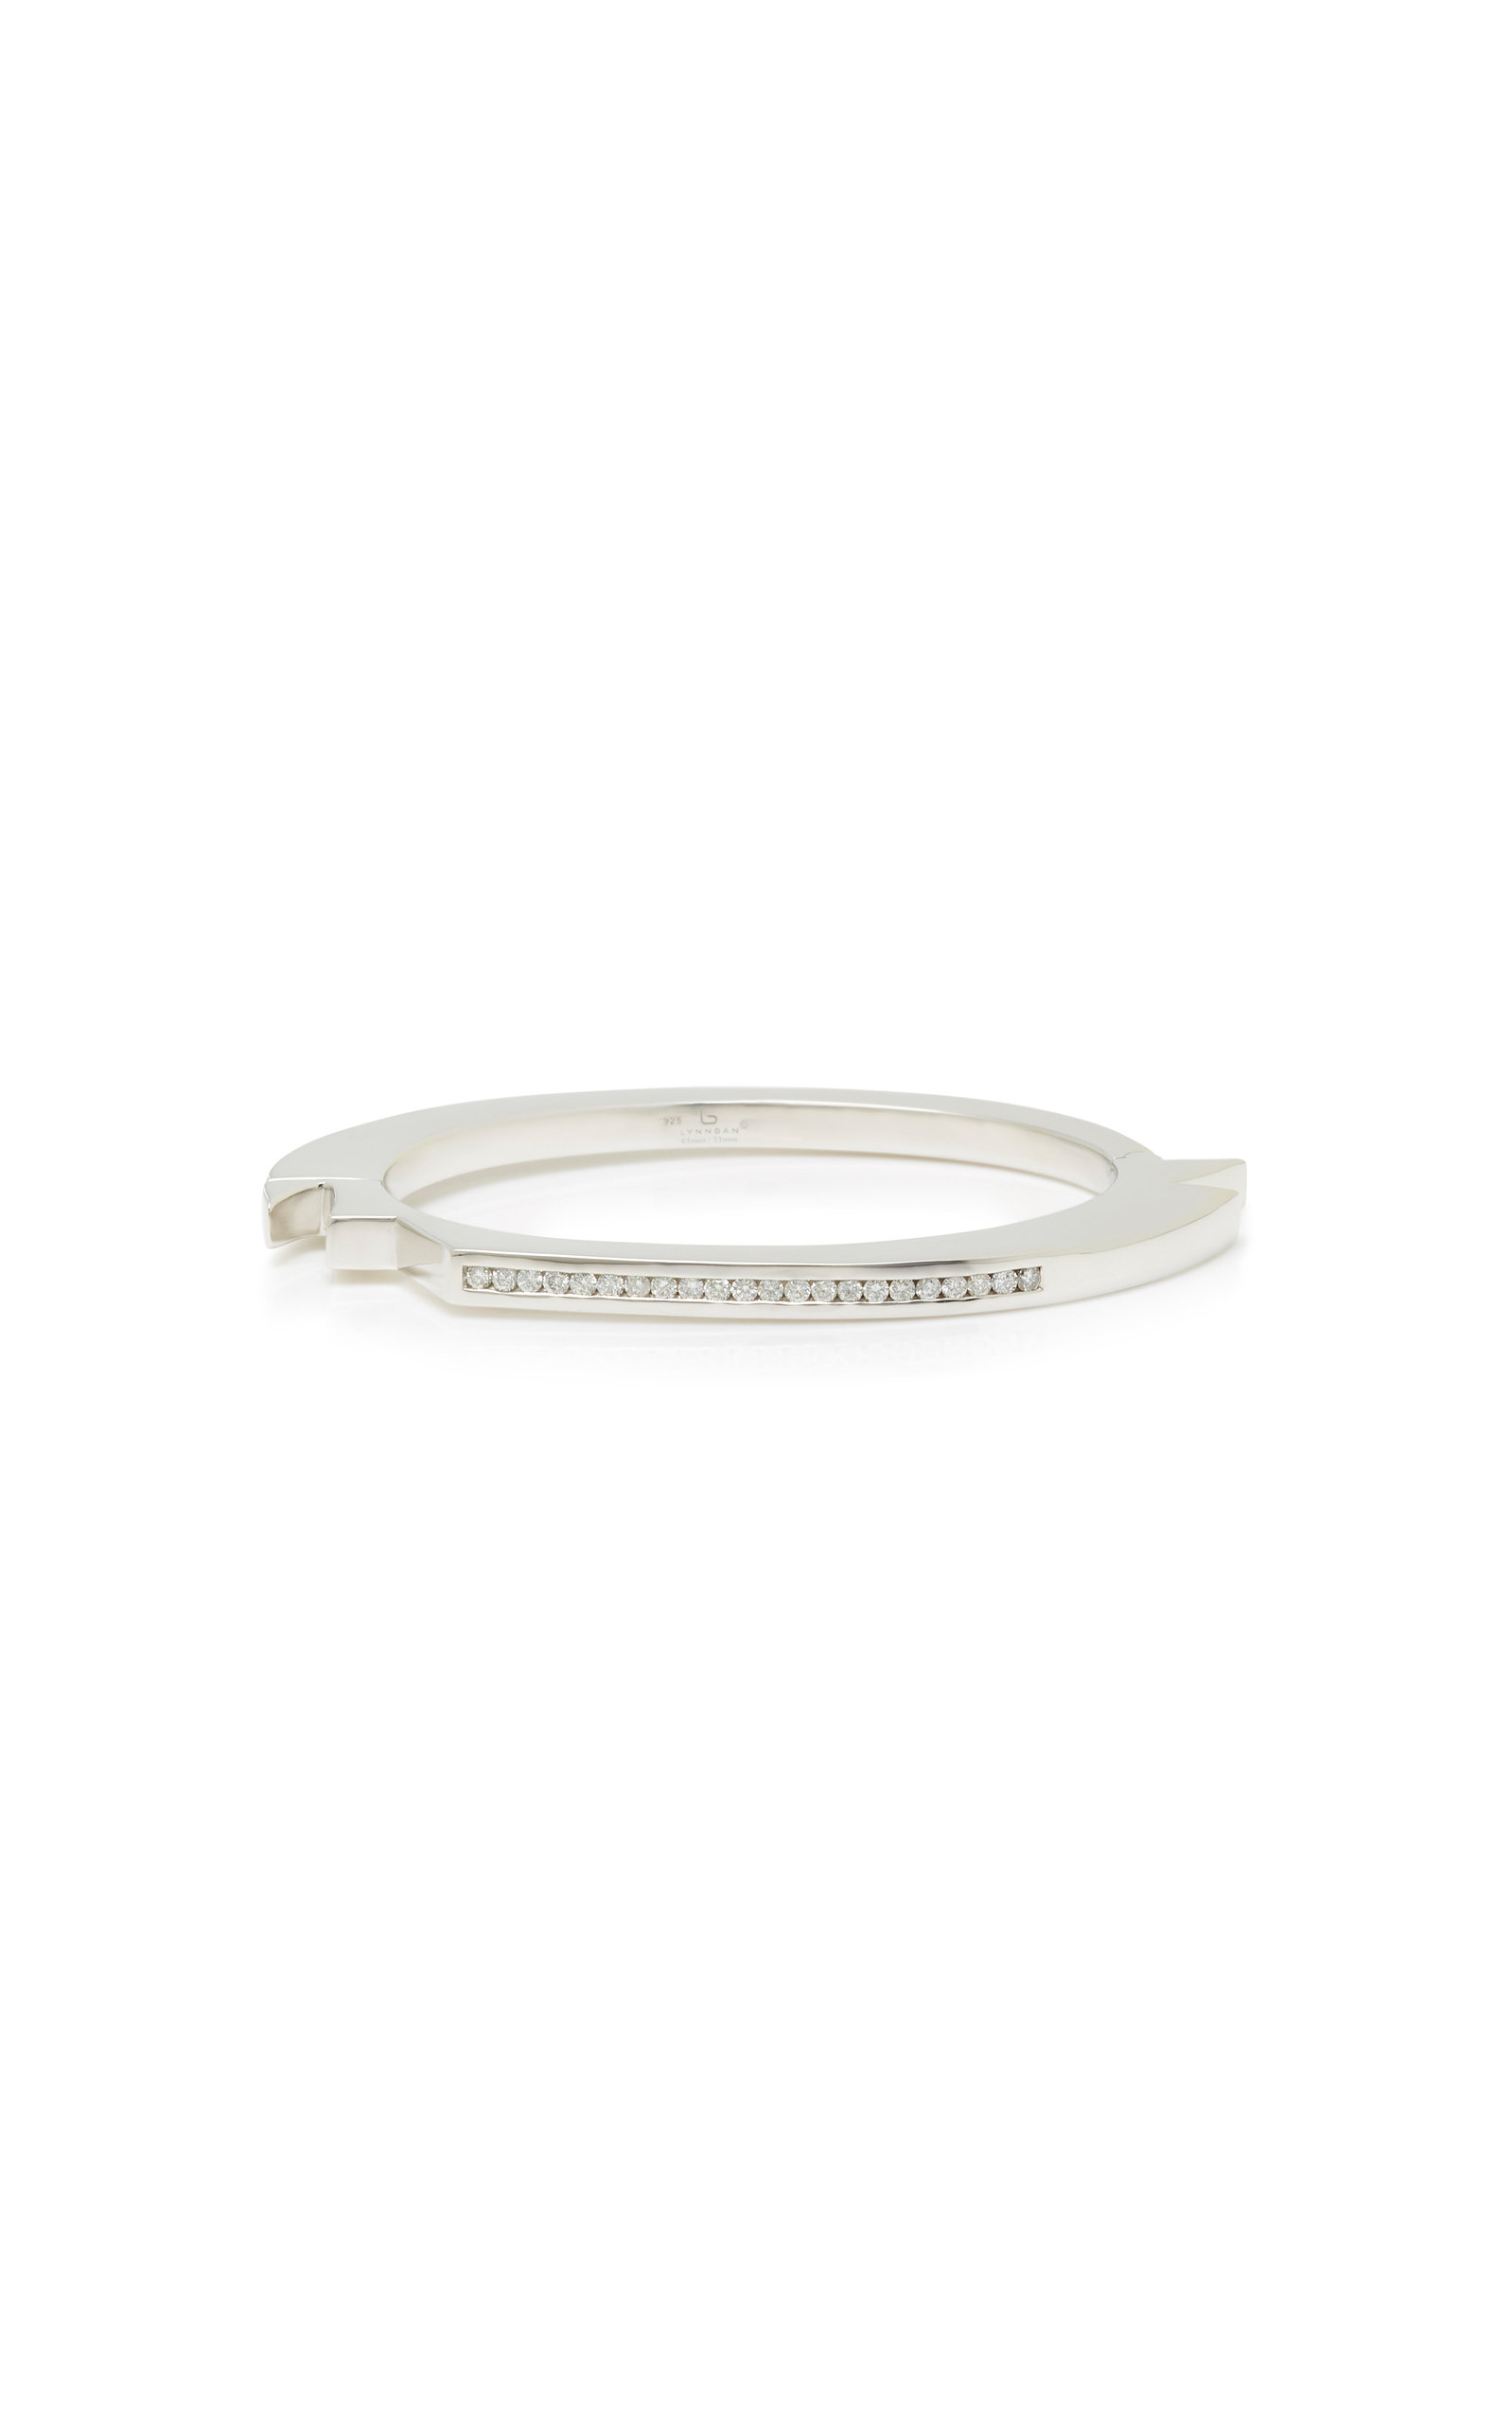 jewelry macy tw featured bangle lyst macys ct silver diamond designer s metallic bangles sterling bracelet in